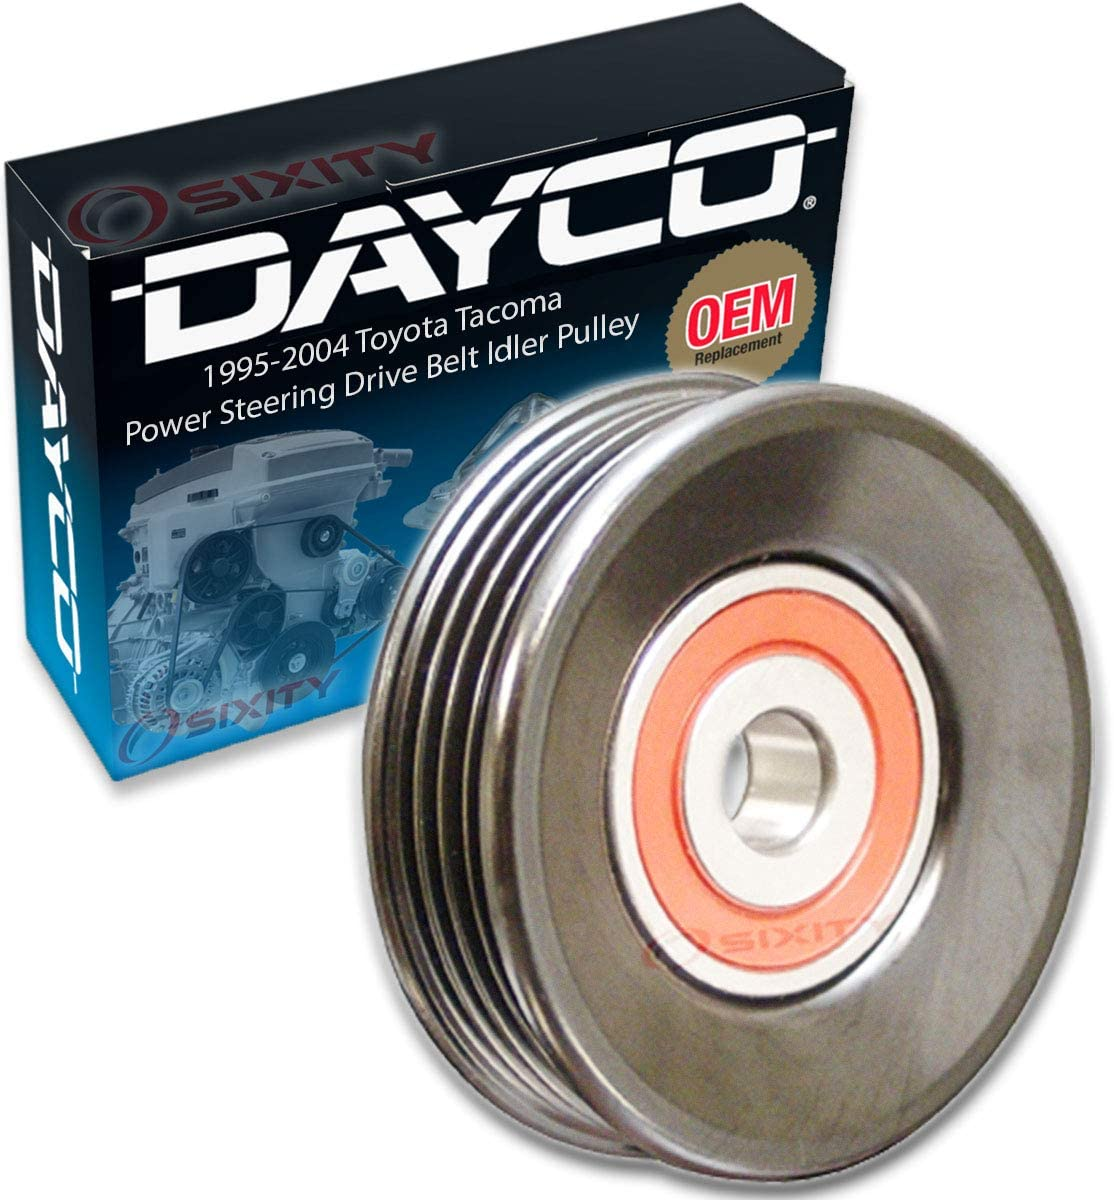 Dayco Max 87% shopping OFF Power Steering Drive Belt Idler Pulley with Toy compatible